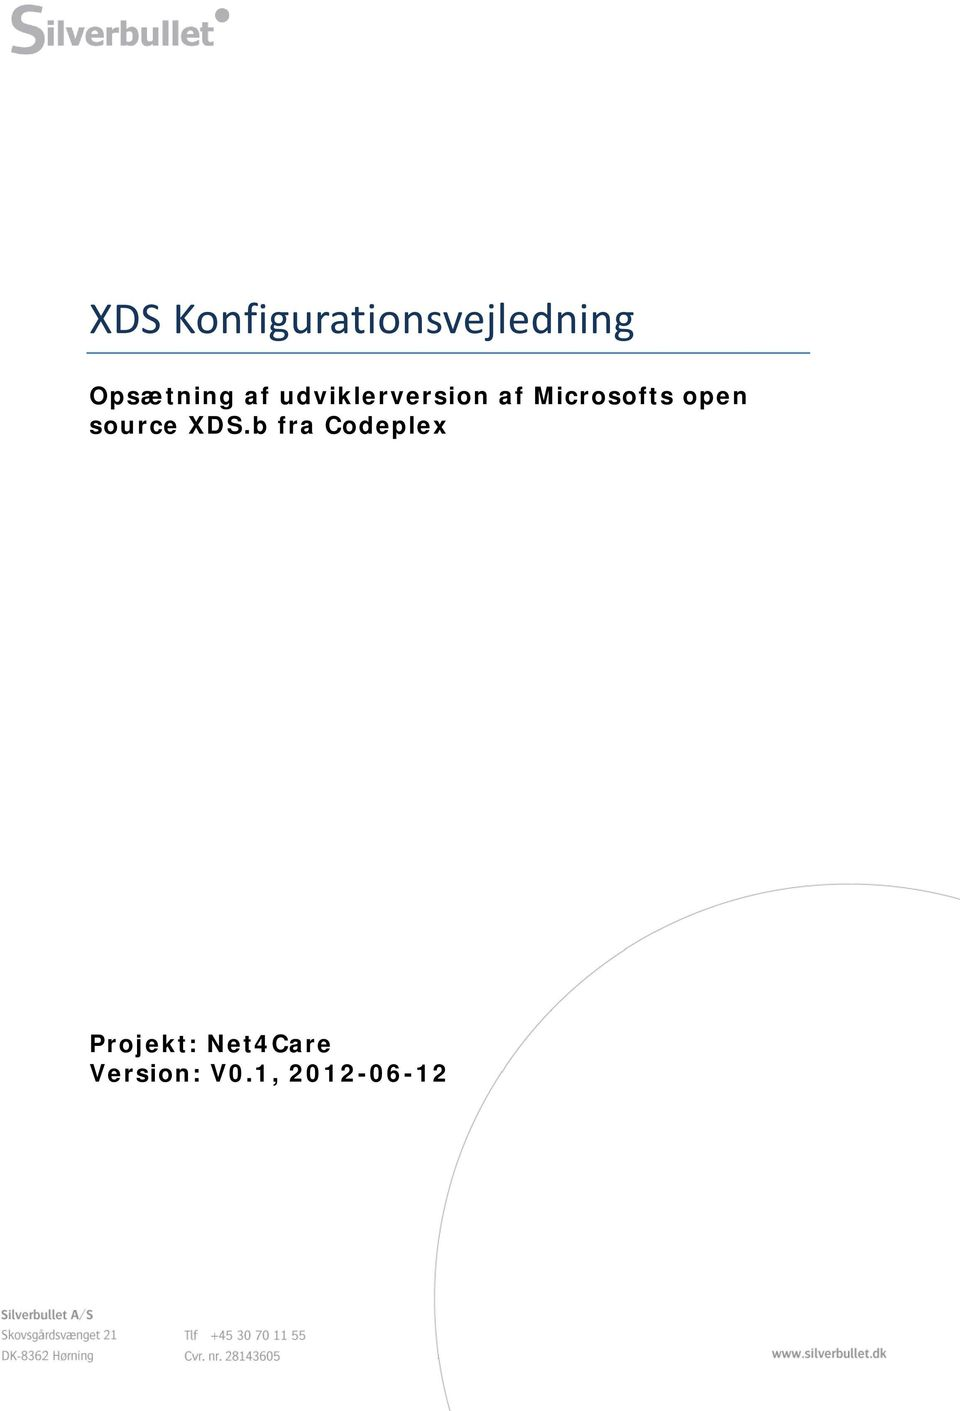 Microsofts open source XDS.